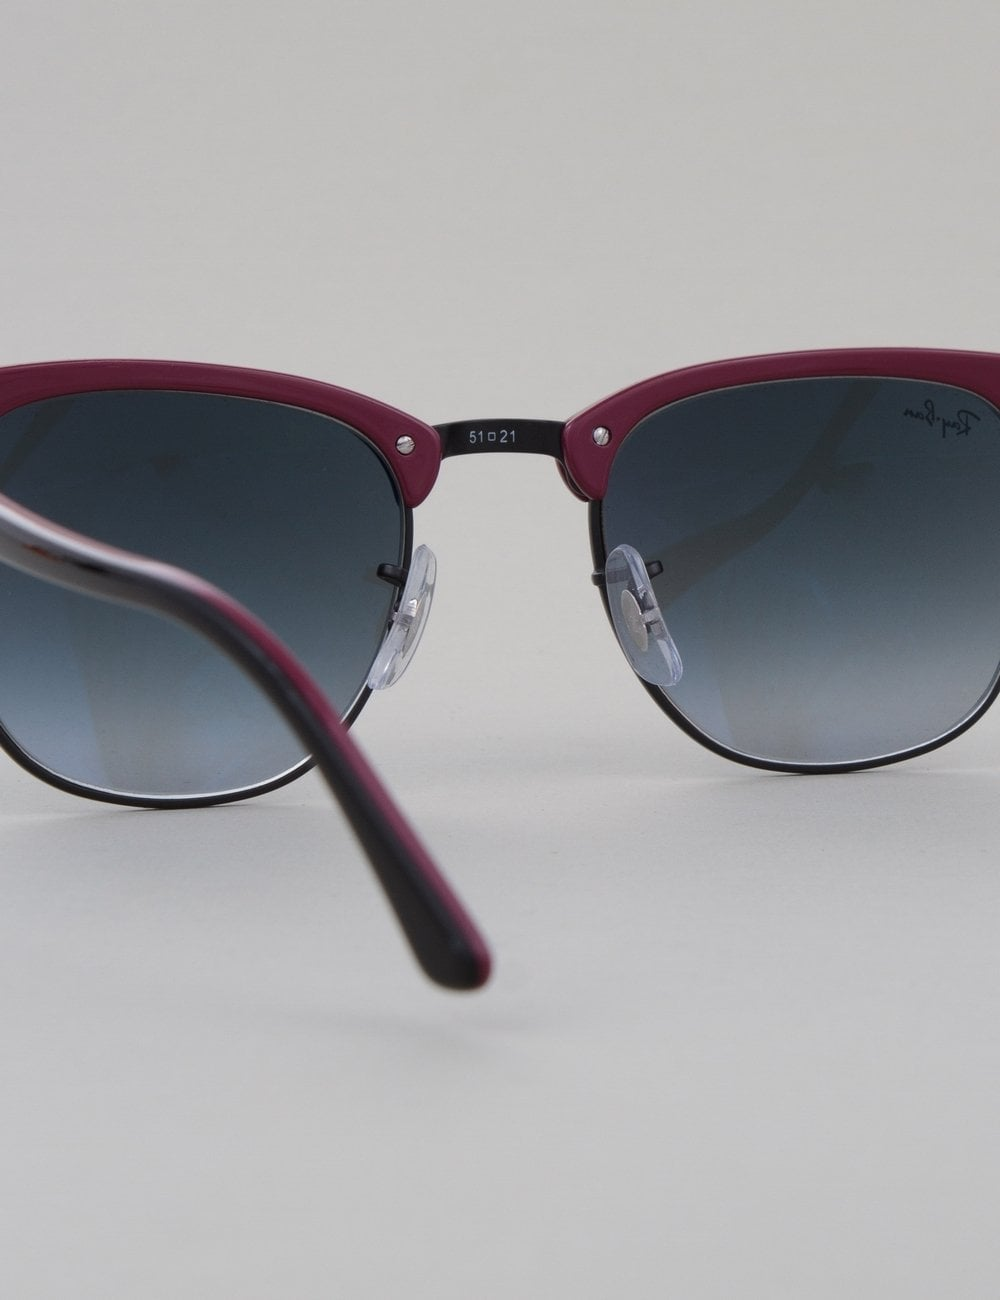 black clubmaster ray bans  Ray-Ban Clubmaster Sunglasses - Top Black Red/Black // Grey ...